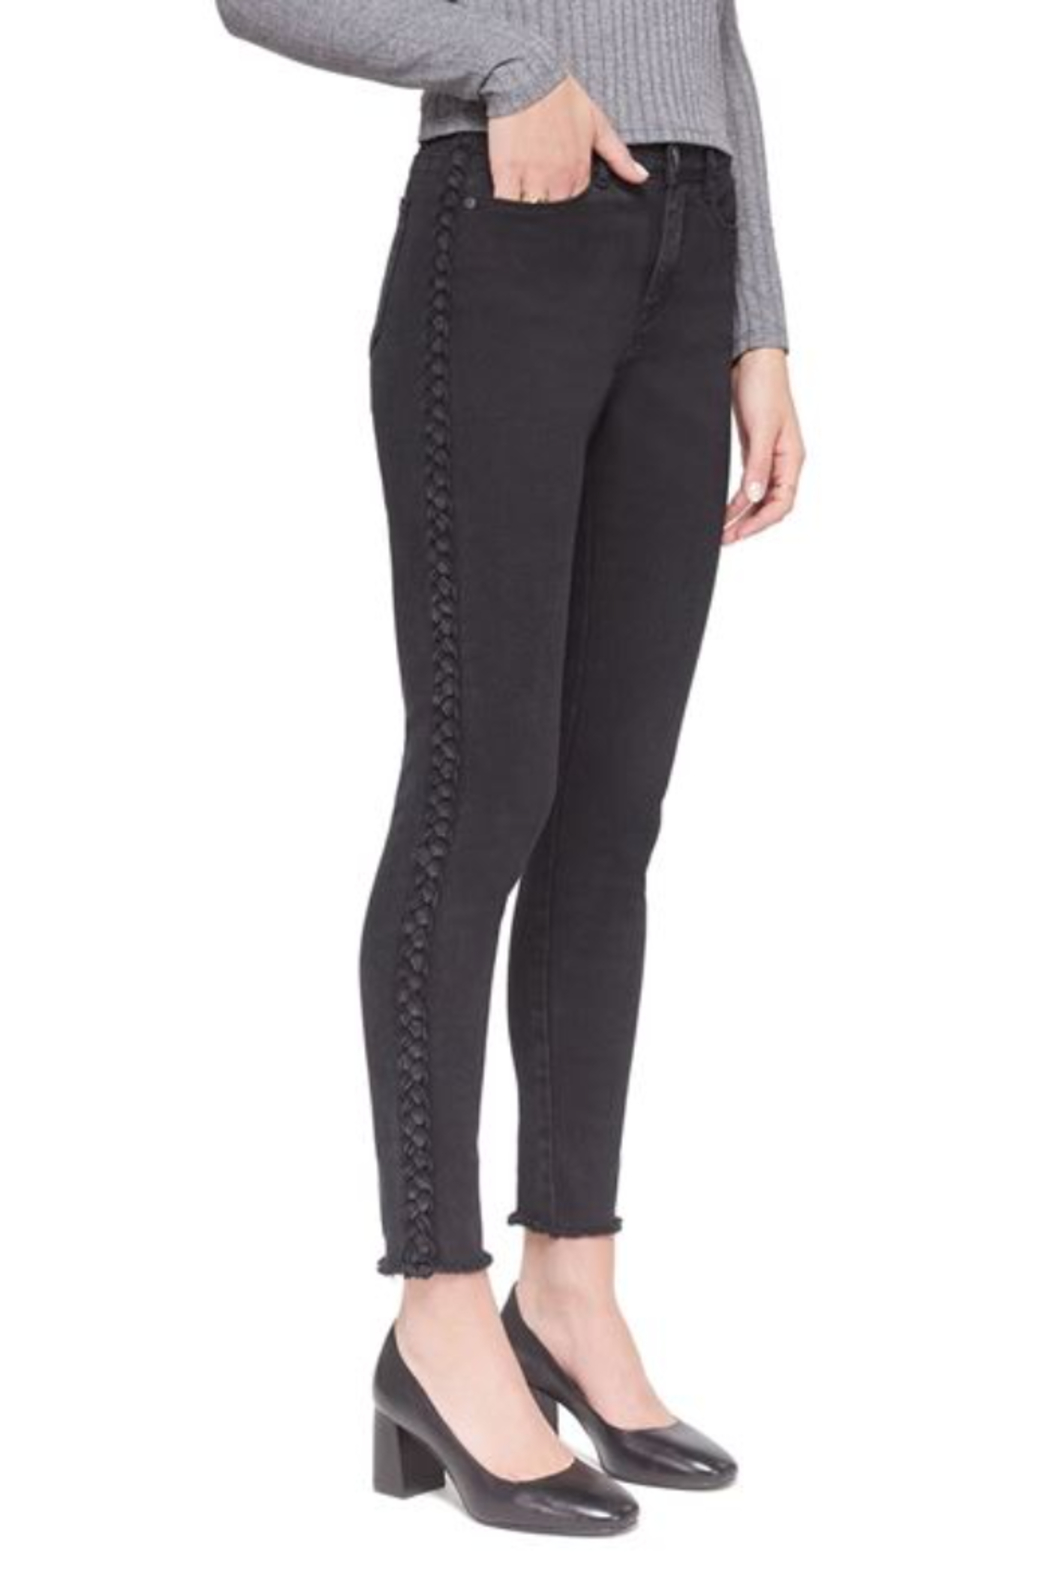 Lola Jeans HIgh Rise Braided Black Skinny  Jean - Front Cropped Image